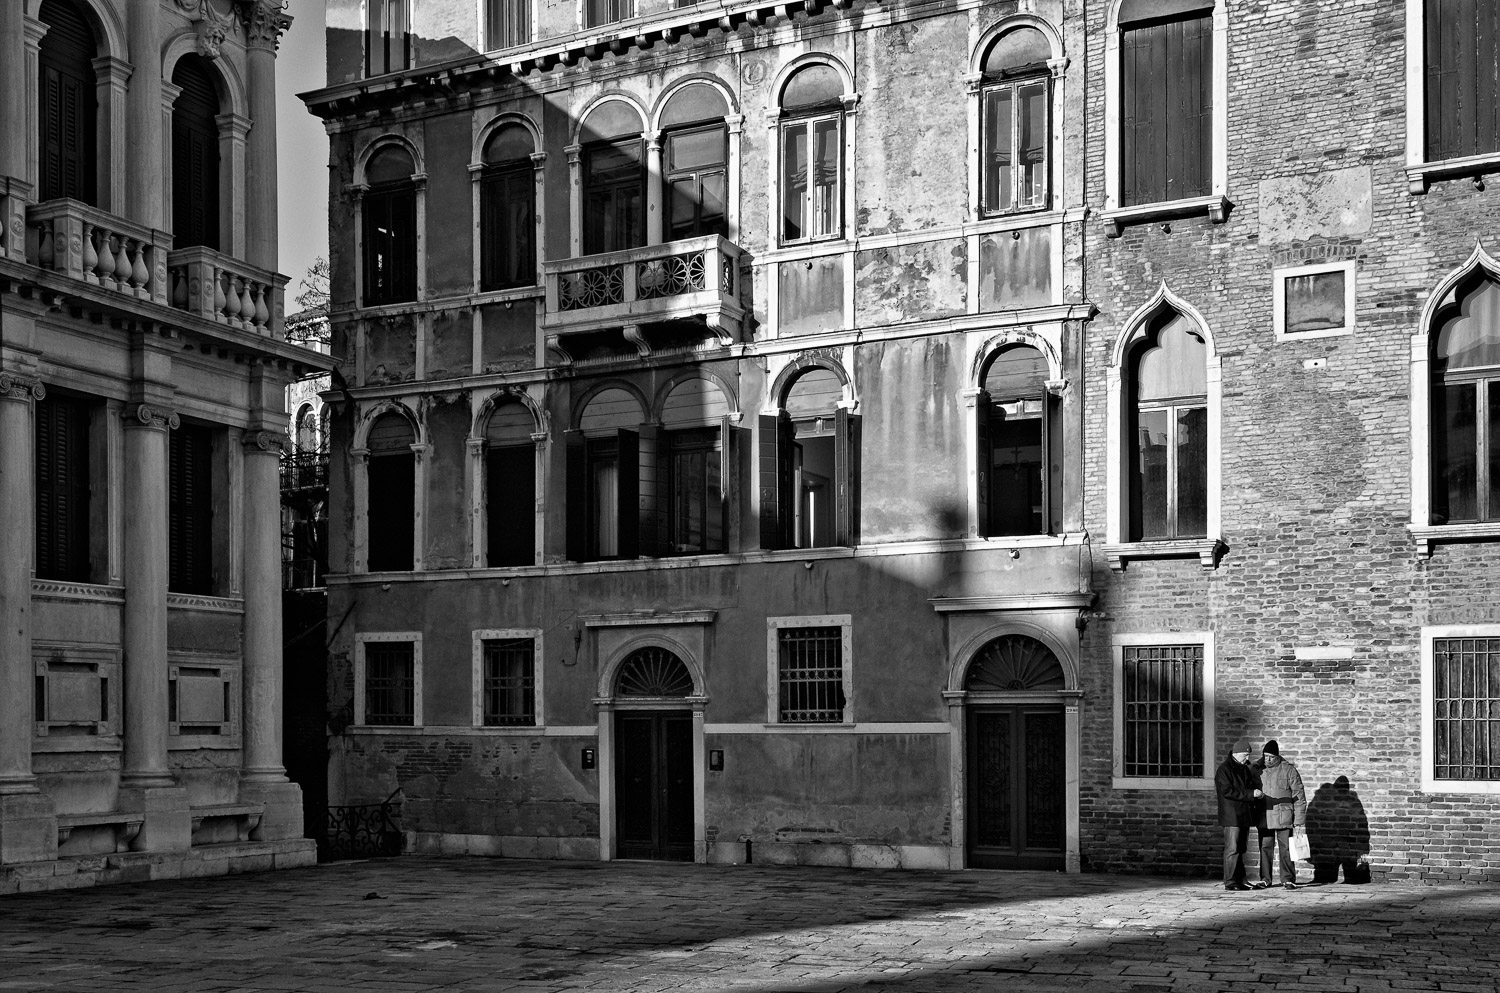 Two Men and a Shadow, Campo Santo Stefano